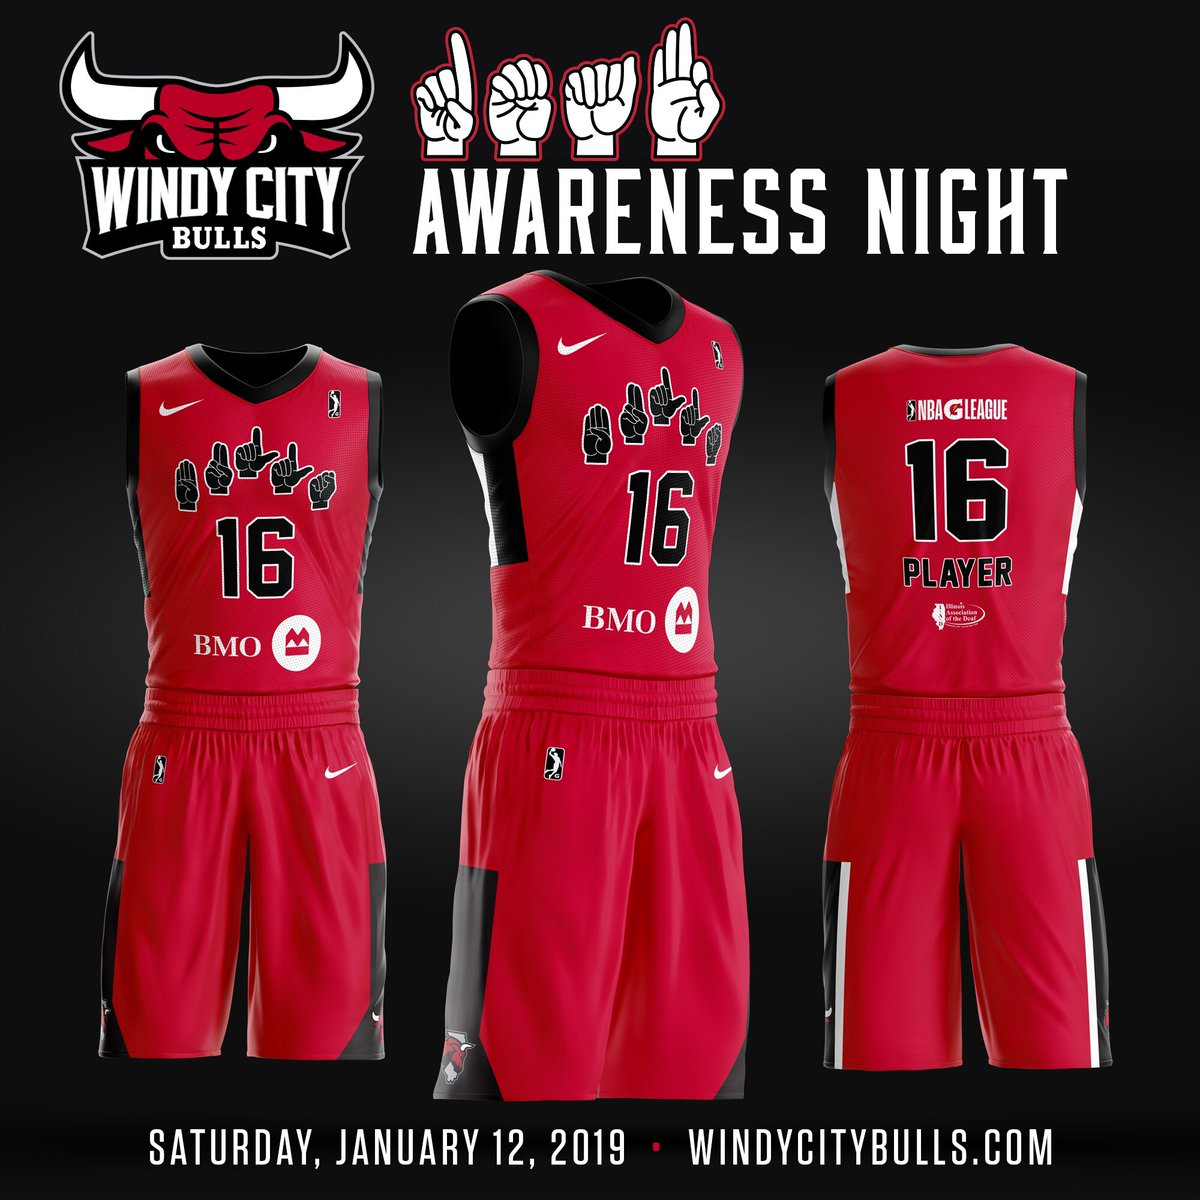 0885632e9 wait  til you see the Windy City Bulls in these special Deaf Awareness  Night jerseys. All jerseys will be auctioned off on Saturday